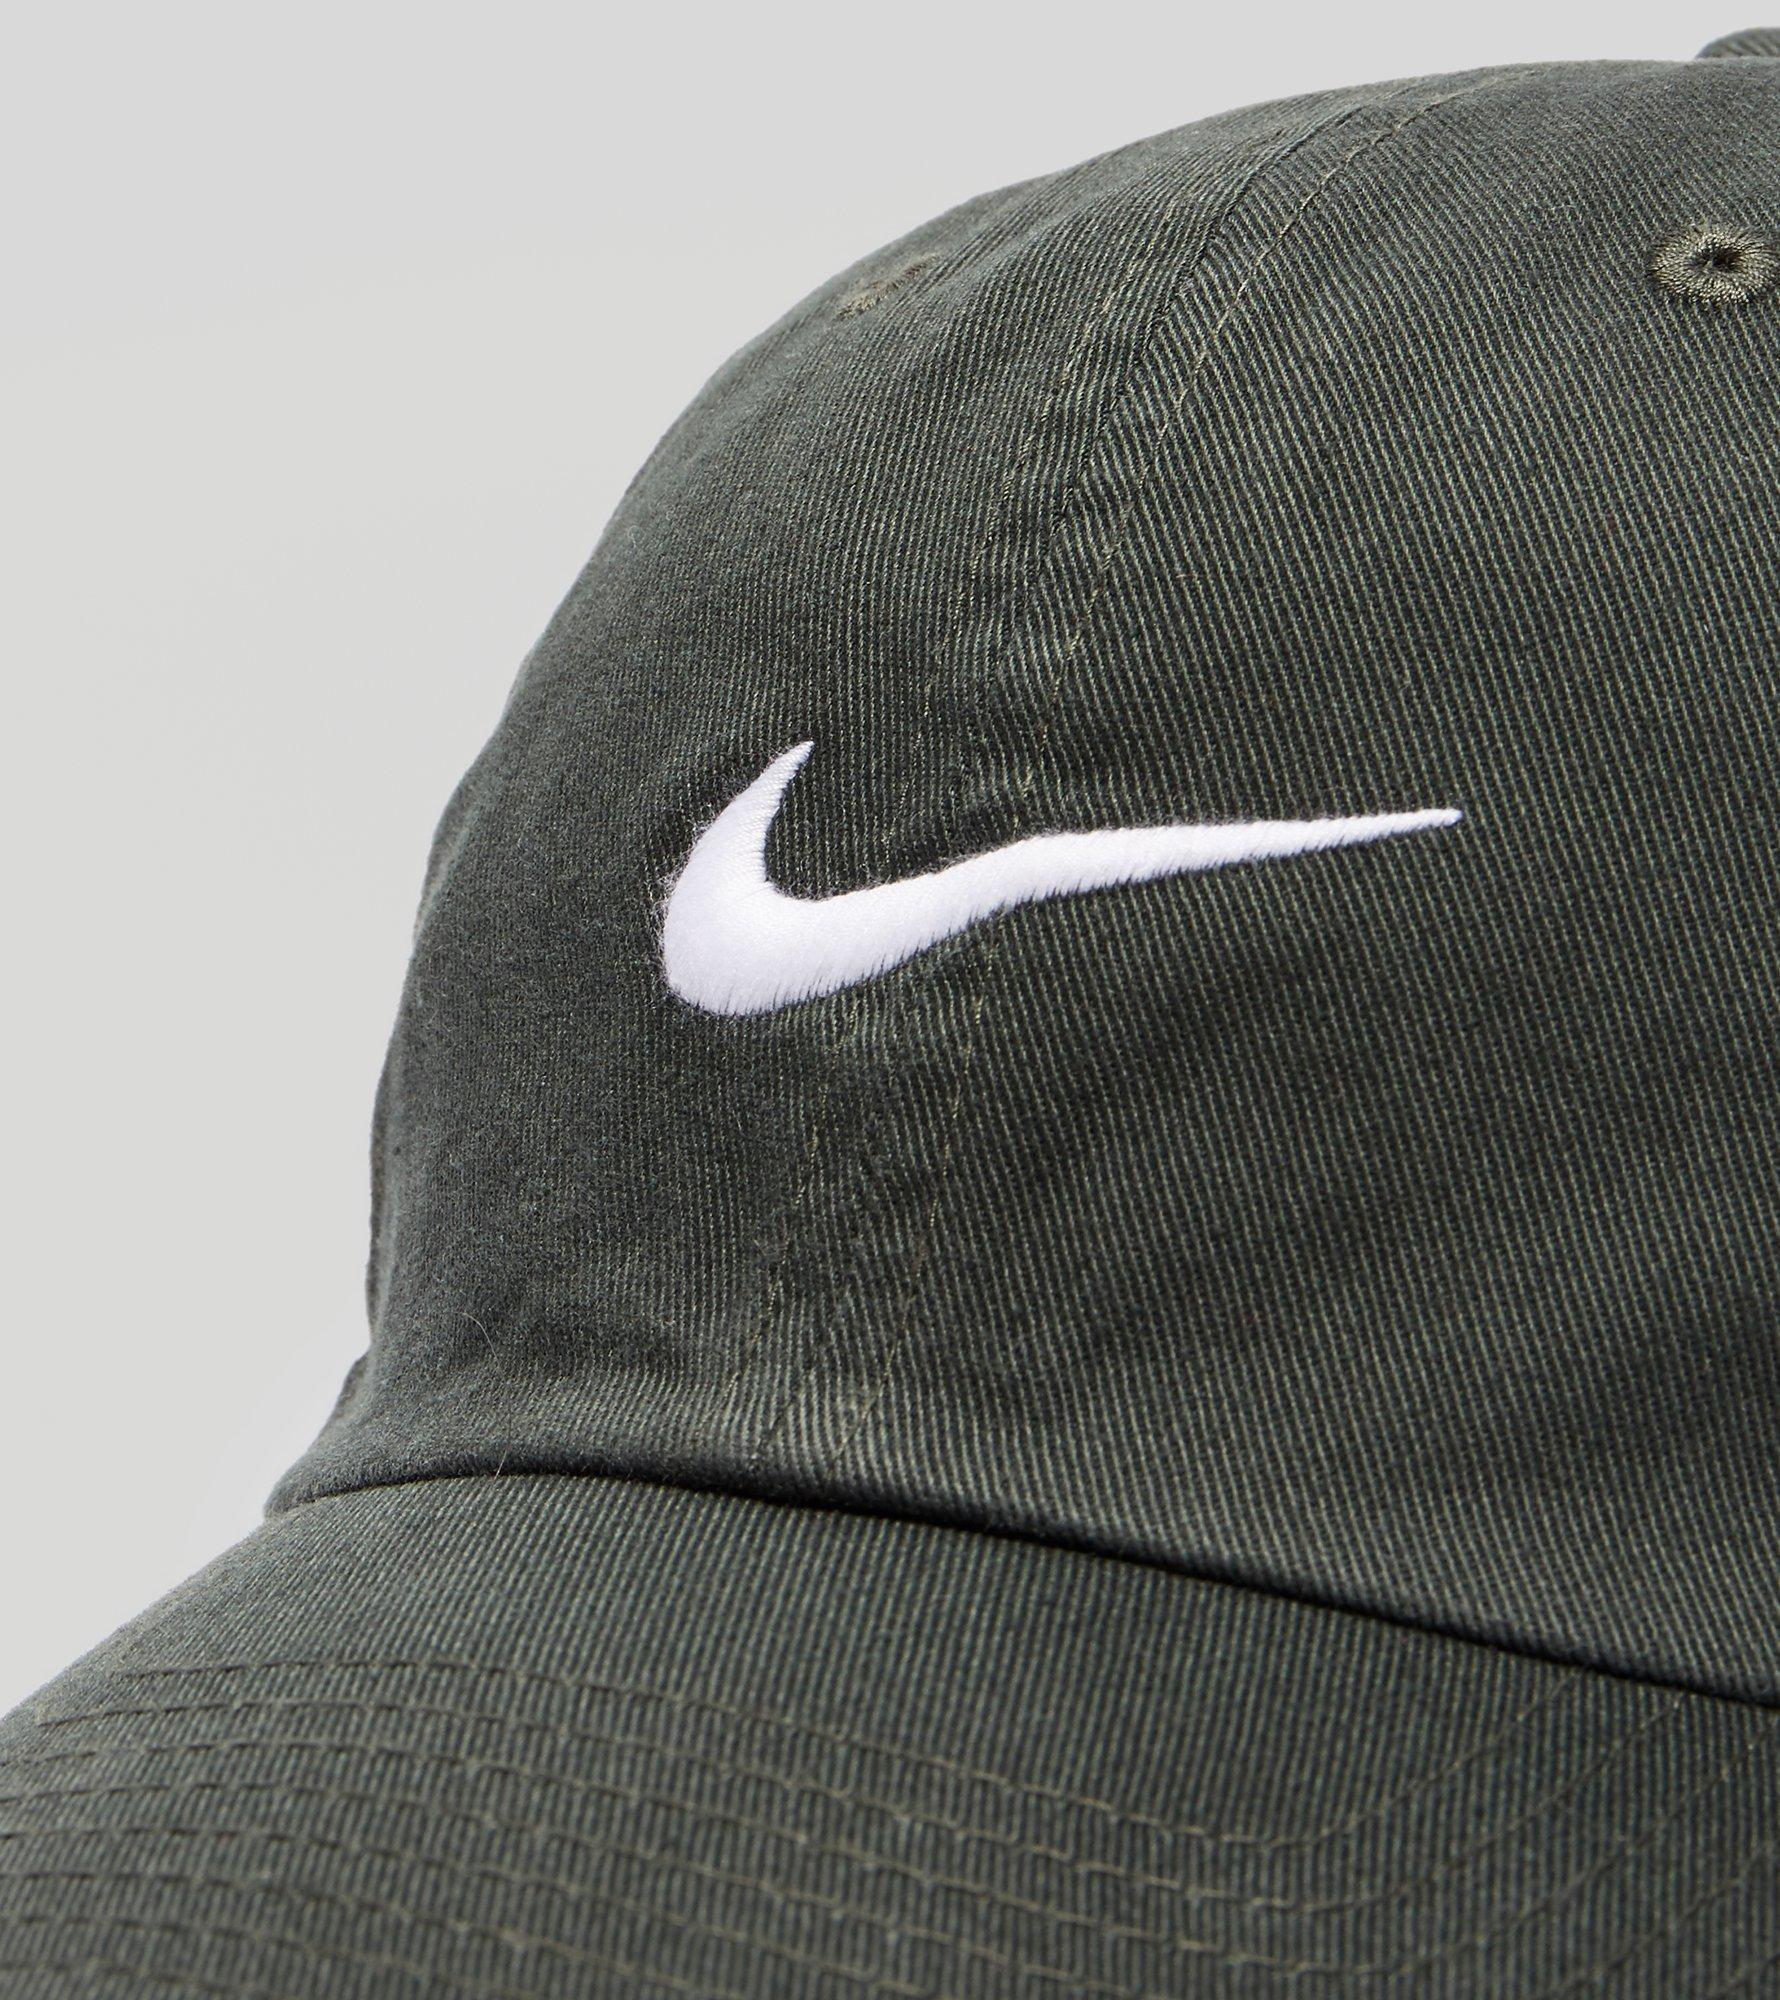 49f94a11 Nike Heritage 86 Swoosh Cap in Green for Men - Lyst